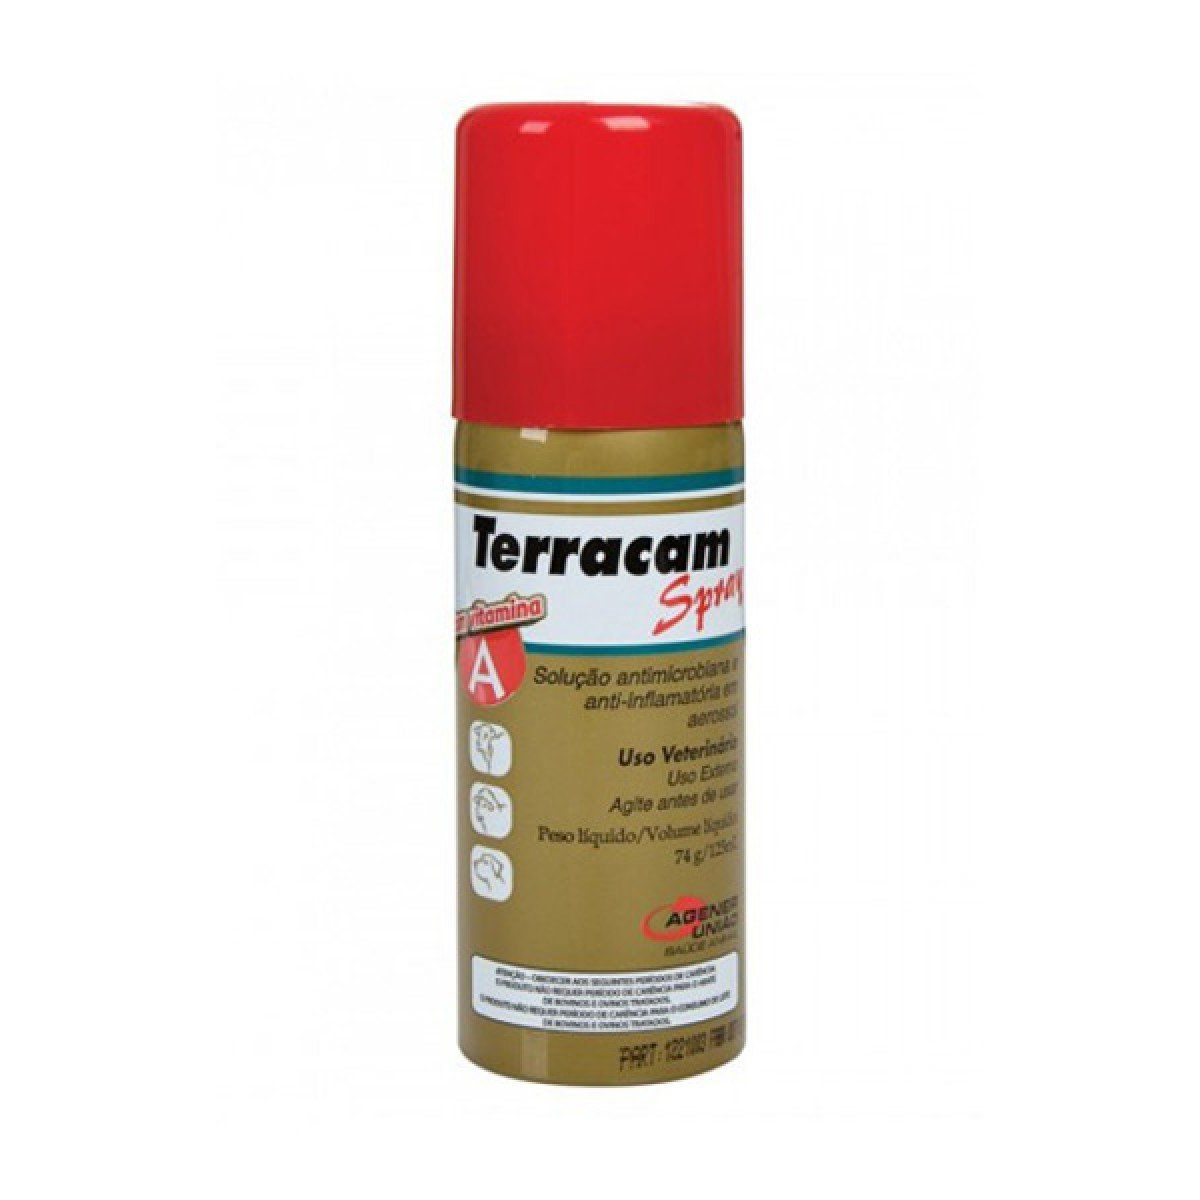 TERRACAM SPRAY 125mL